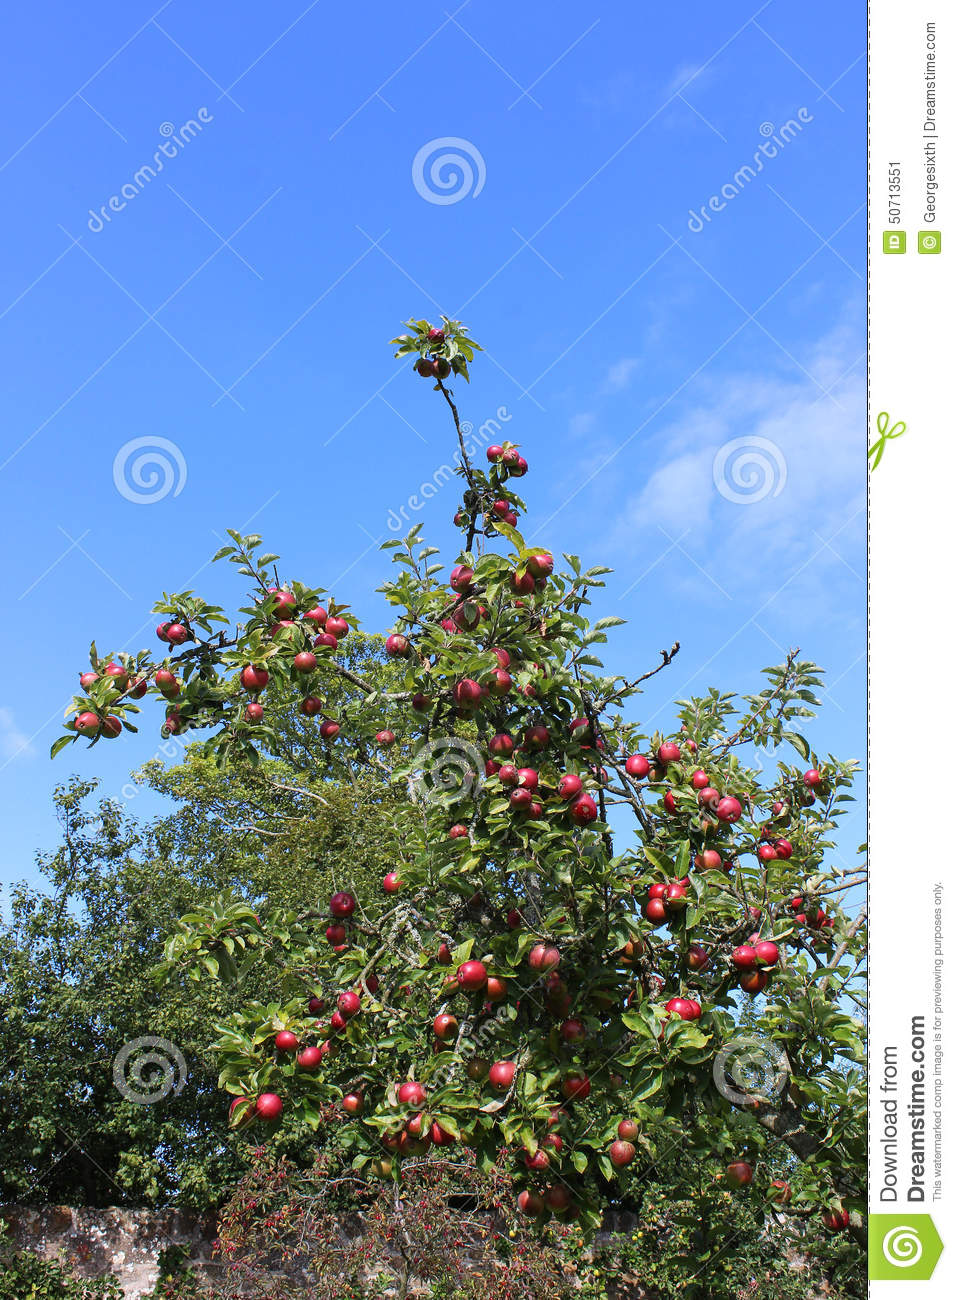 Heritage apple tree laden with fruit in autumn stock photo image 50713551 - Planting fruit trees in autumn ...